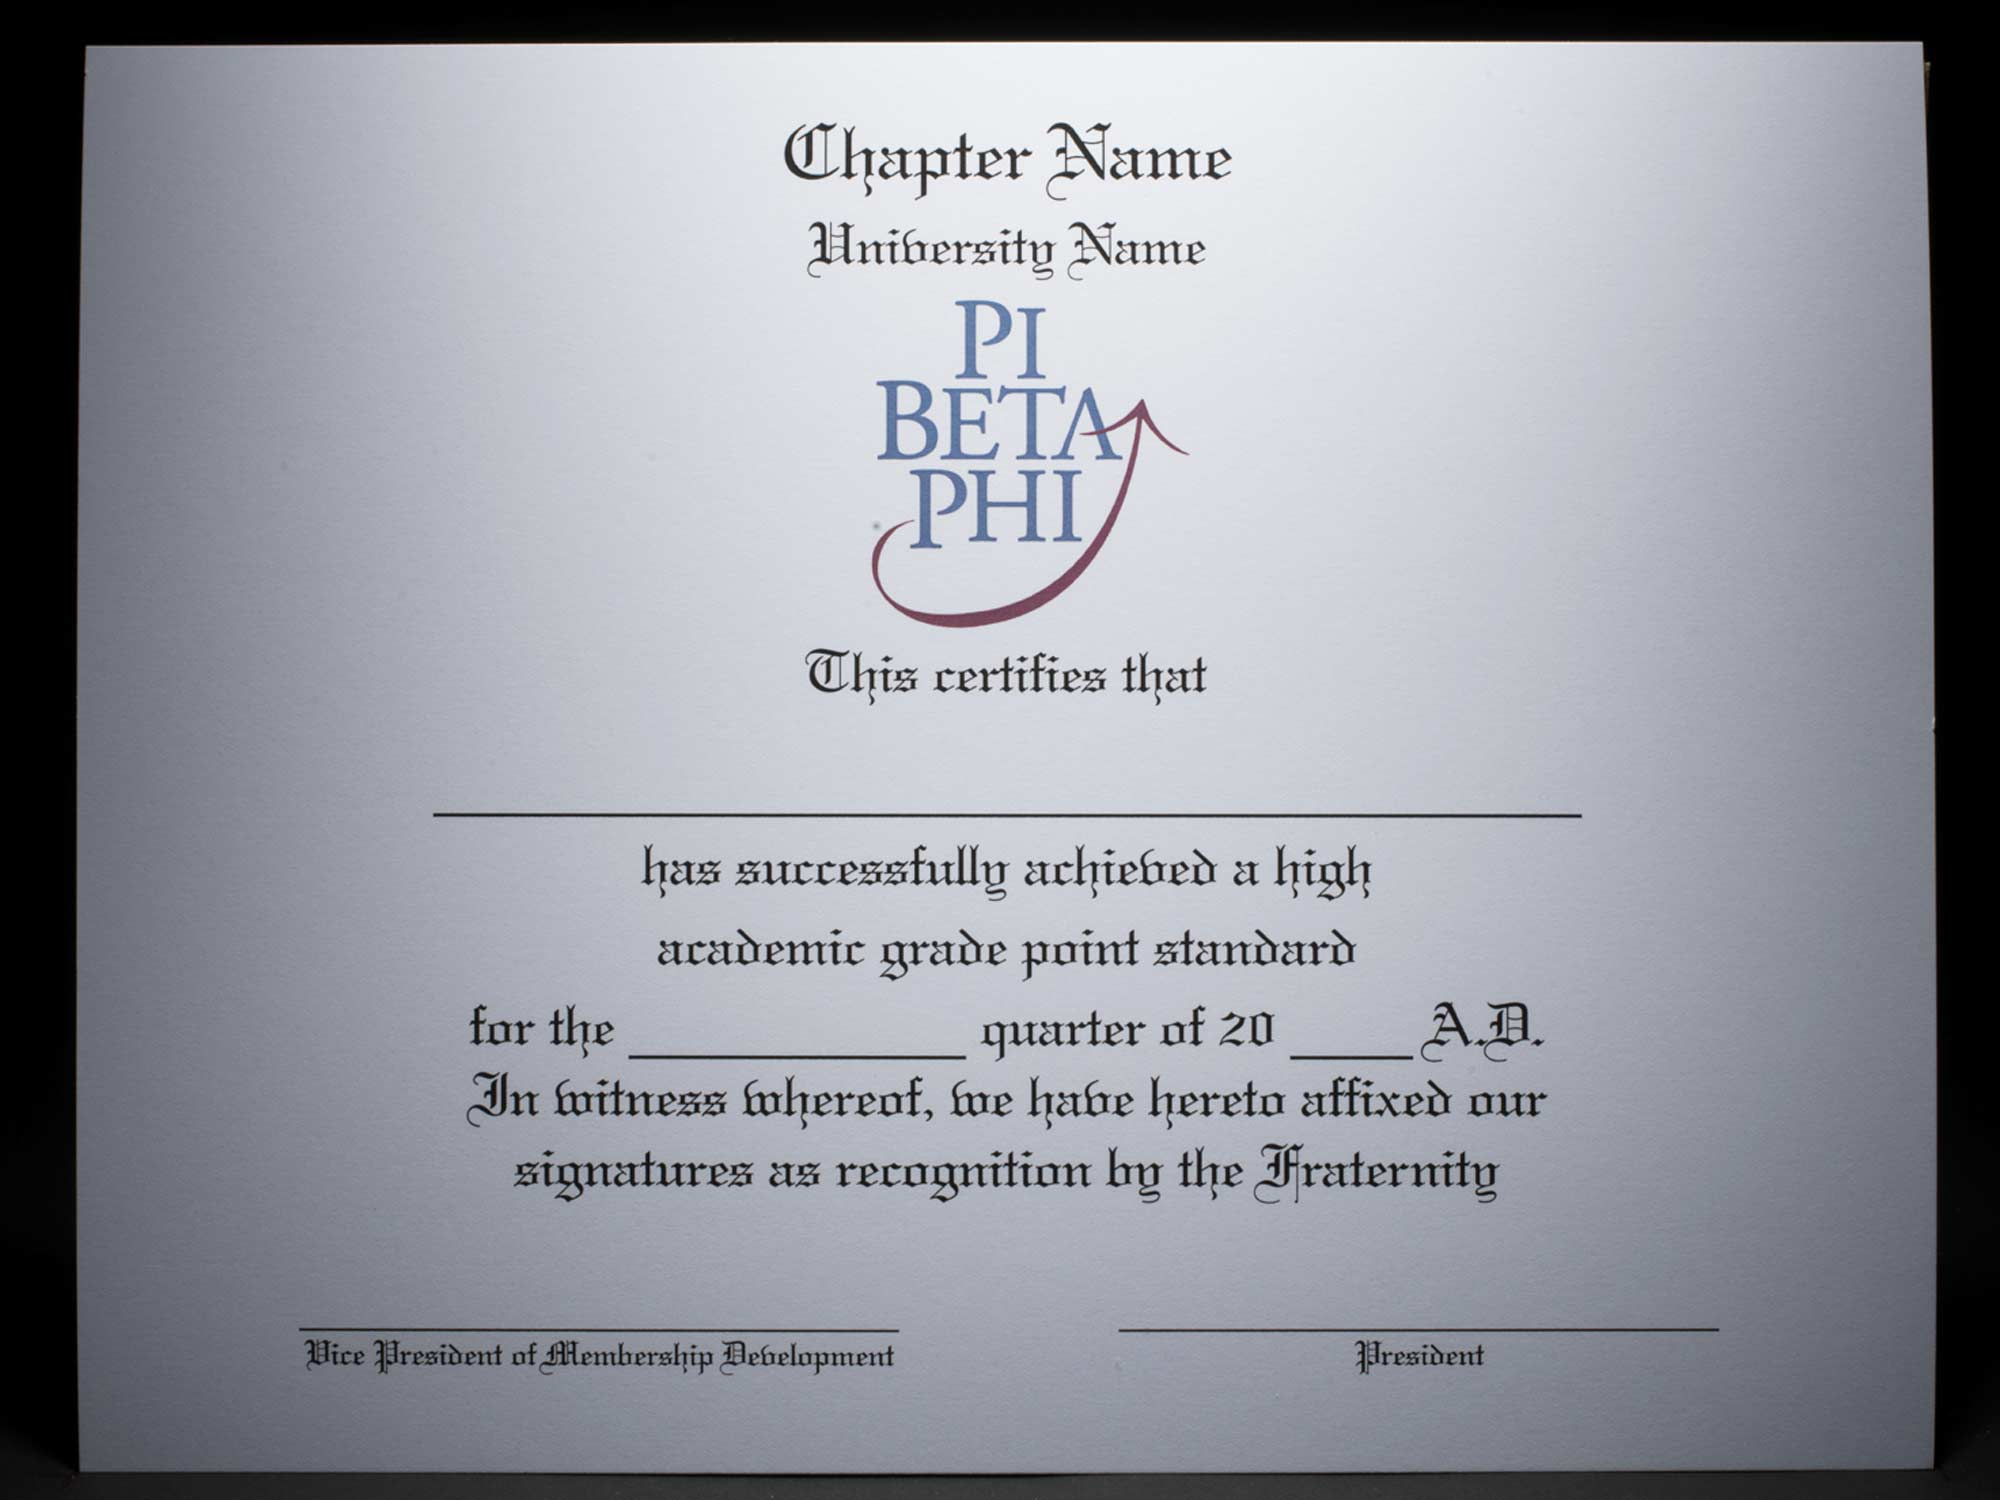 Academic Achievement Certificates Official Branding Pi Beta Phi